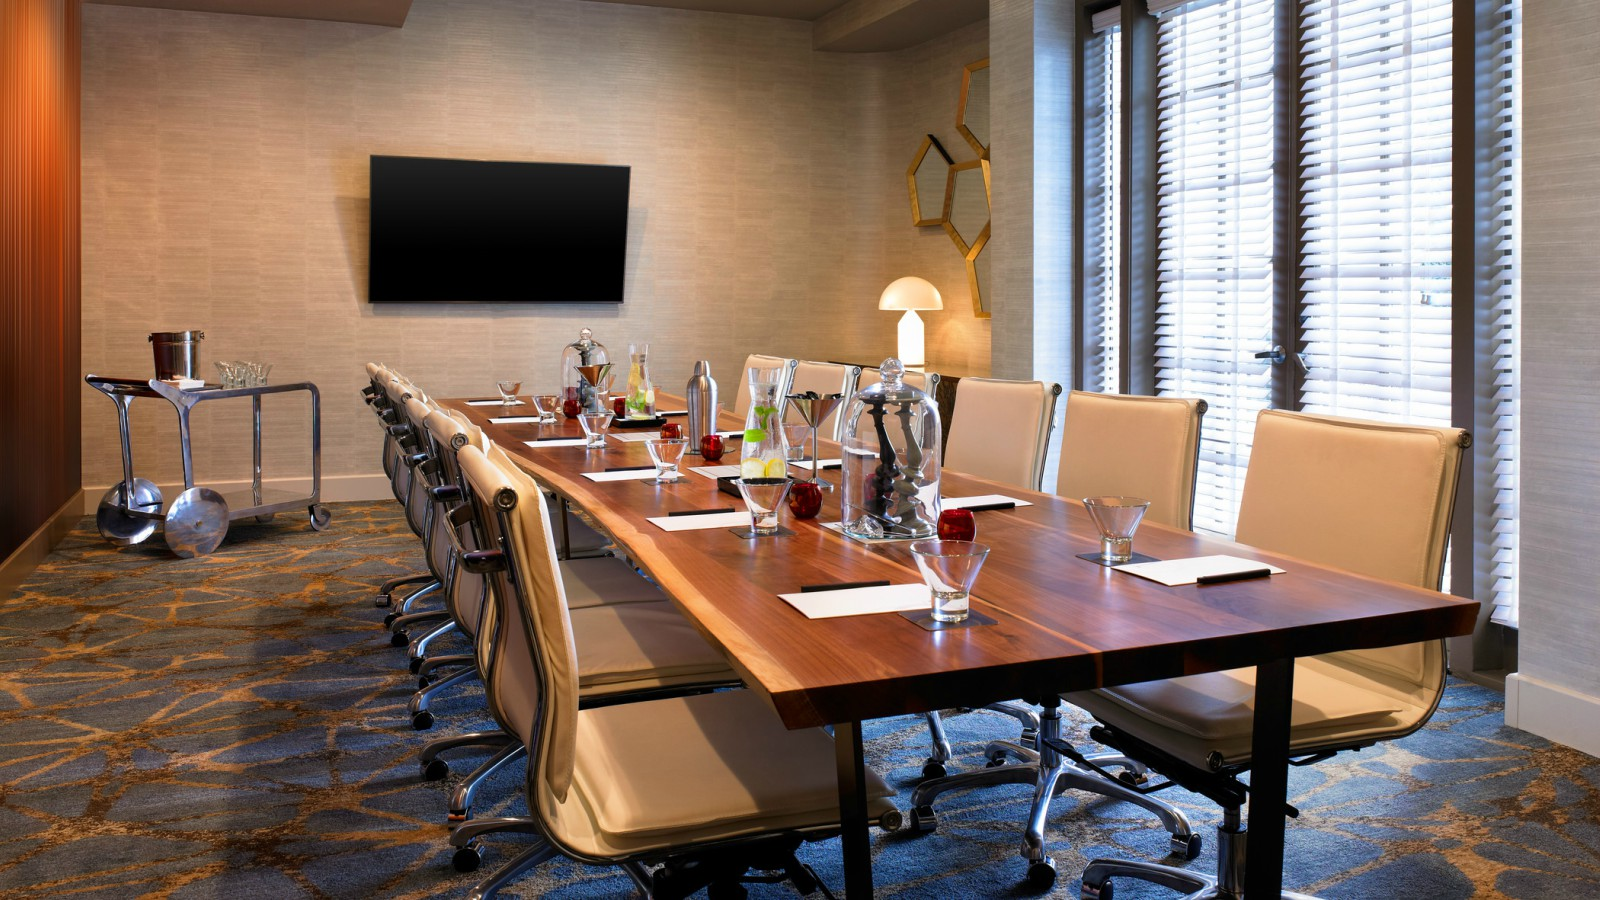 Los angeles meeting spaces w los angeles west beverly hills - Small event spaces los angeles ideas ...